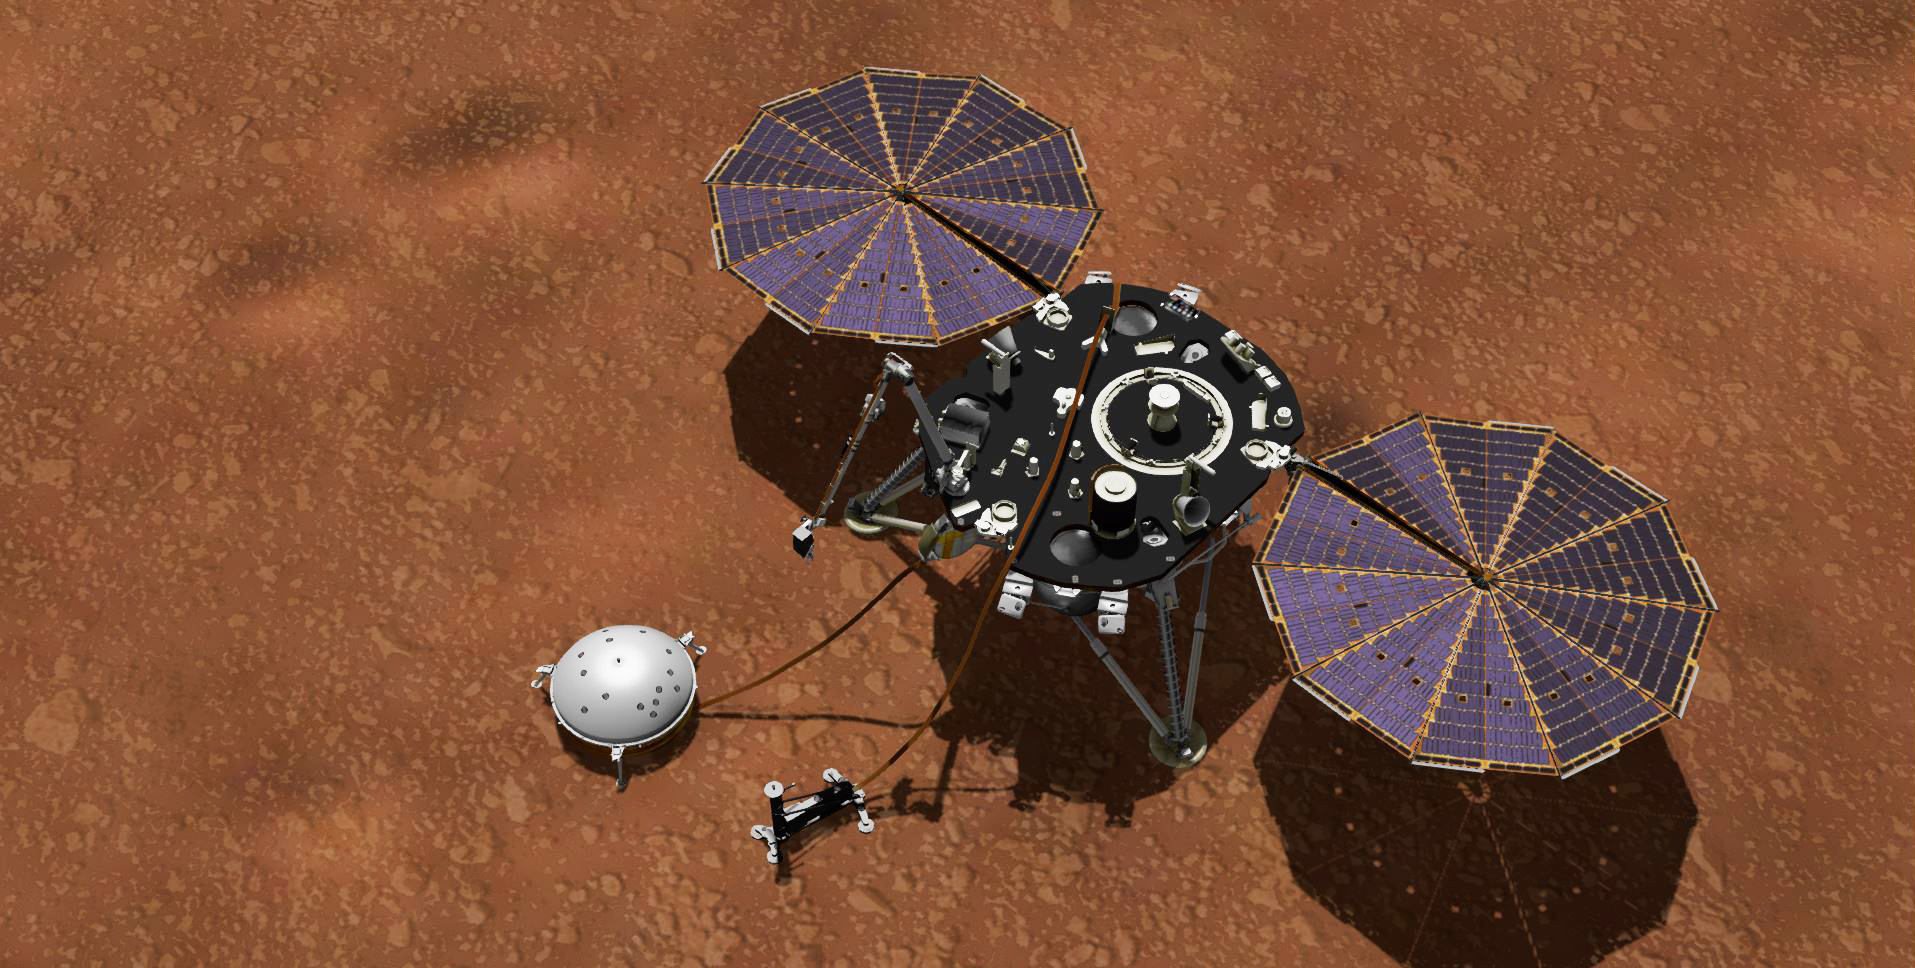 A lander sits on the orangish surface of Mars.